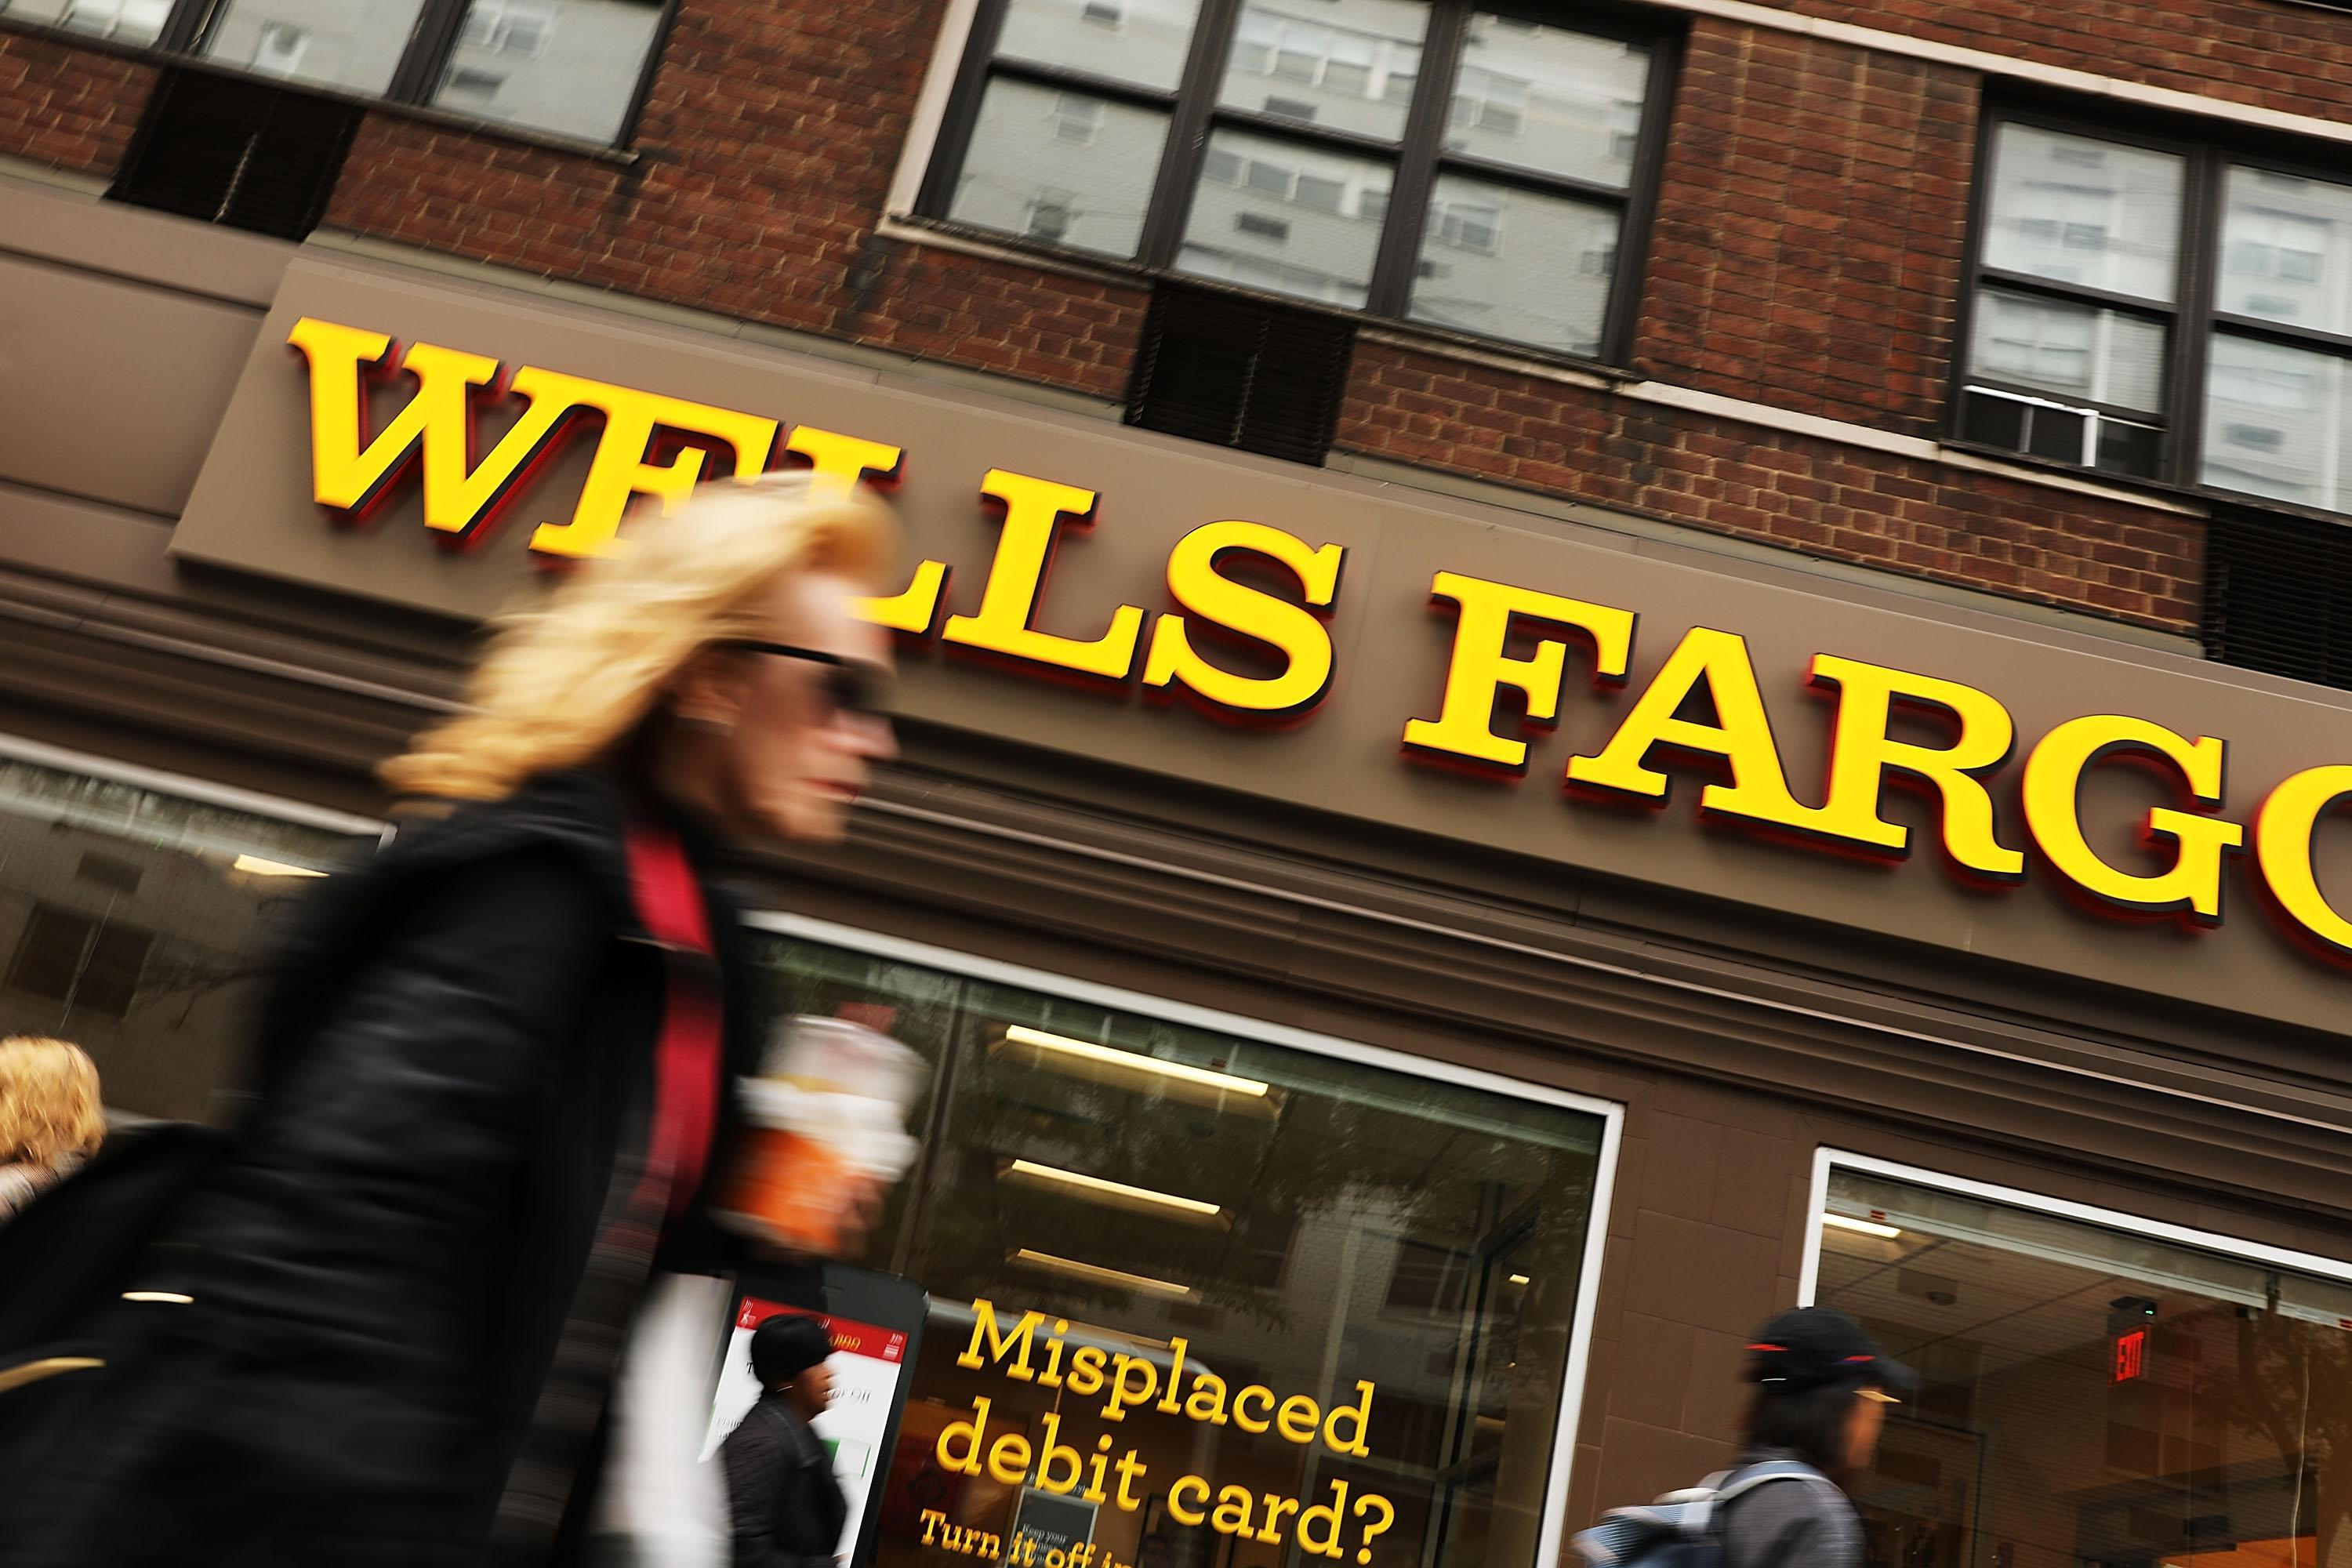 NEW YORK, NY - OCTOBER 13:  People walk by a Wells Fargo bank branch on October 13, 2017 in New York City. Wells Fargo shares were down 3.4% toÊ$53.34Êin afternoonÊtrading following news that the banks quarterly profit from July through September dropped nearly 19%.  (Photo by Spencer Platt/Getty Images)